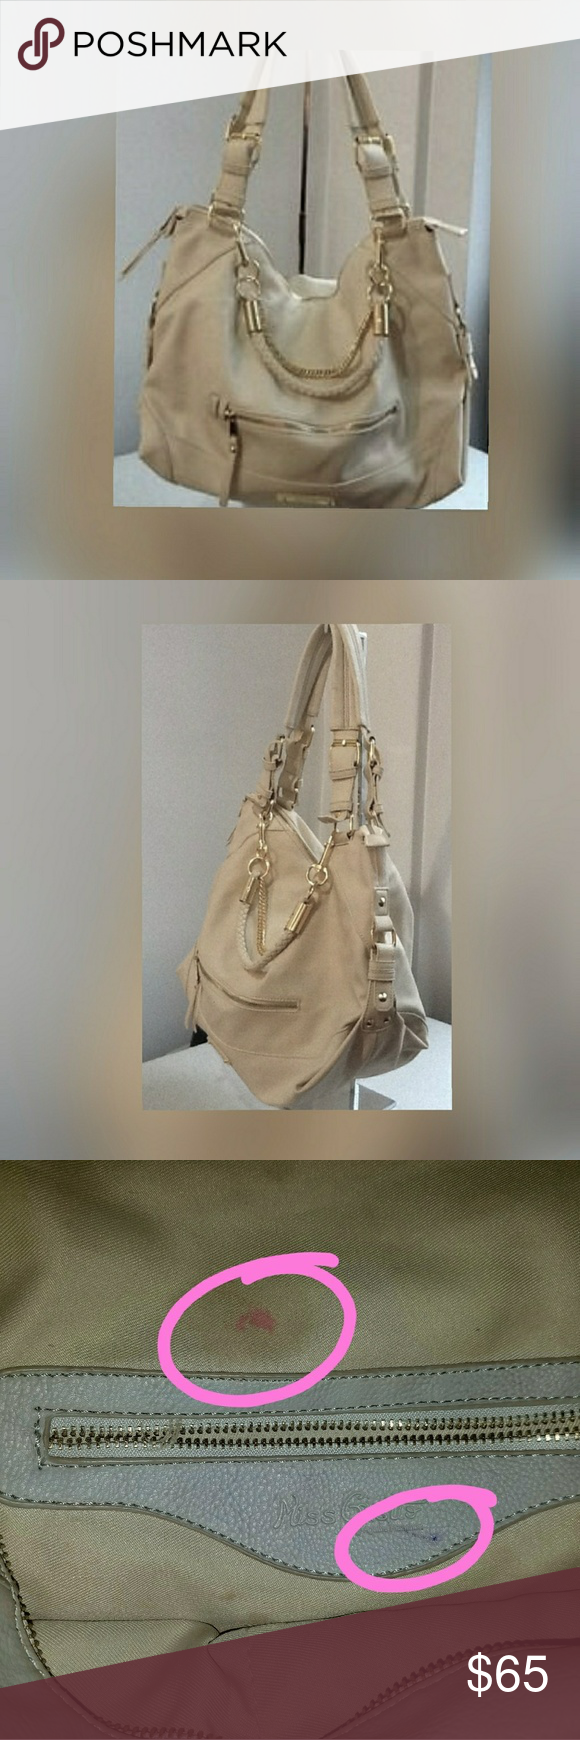 Miss Gustto Handbag Katie Beautiful Large Vegan Leather Hand Bag In Cream Fully Lined Smooth Snag Free Polyester Fabric With Easy To Find Pocket